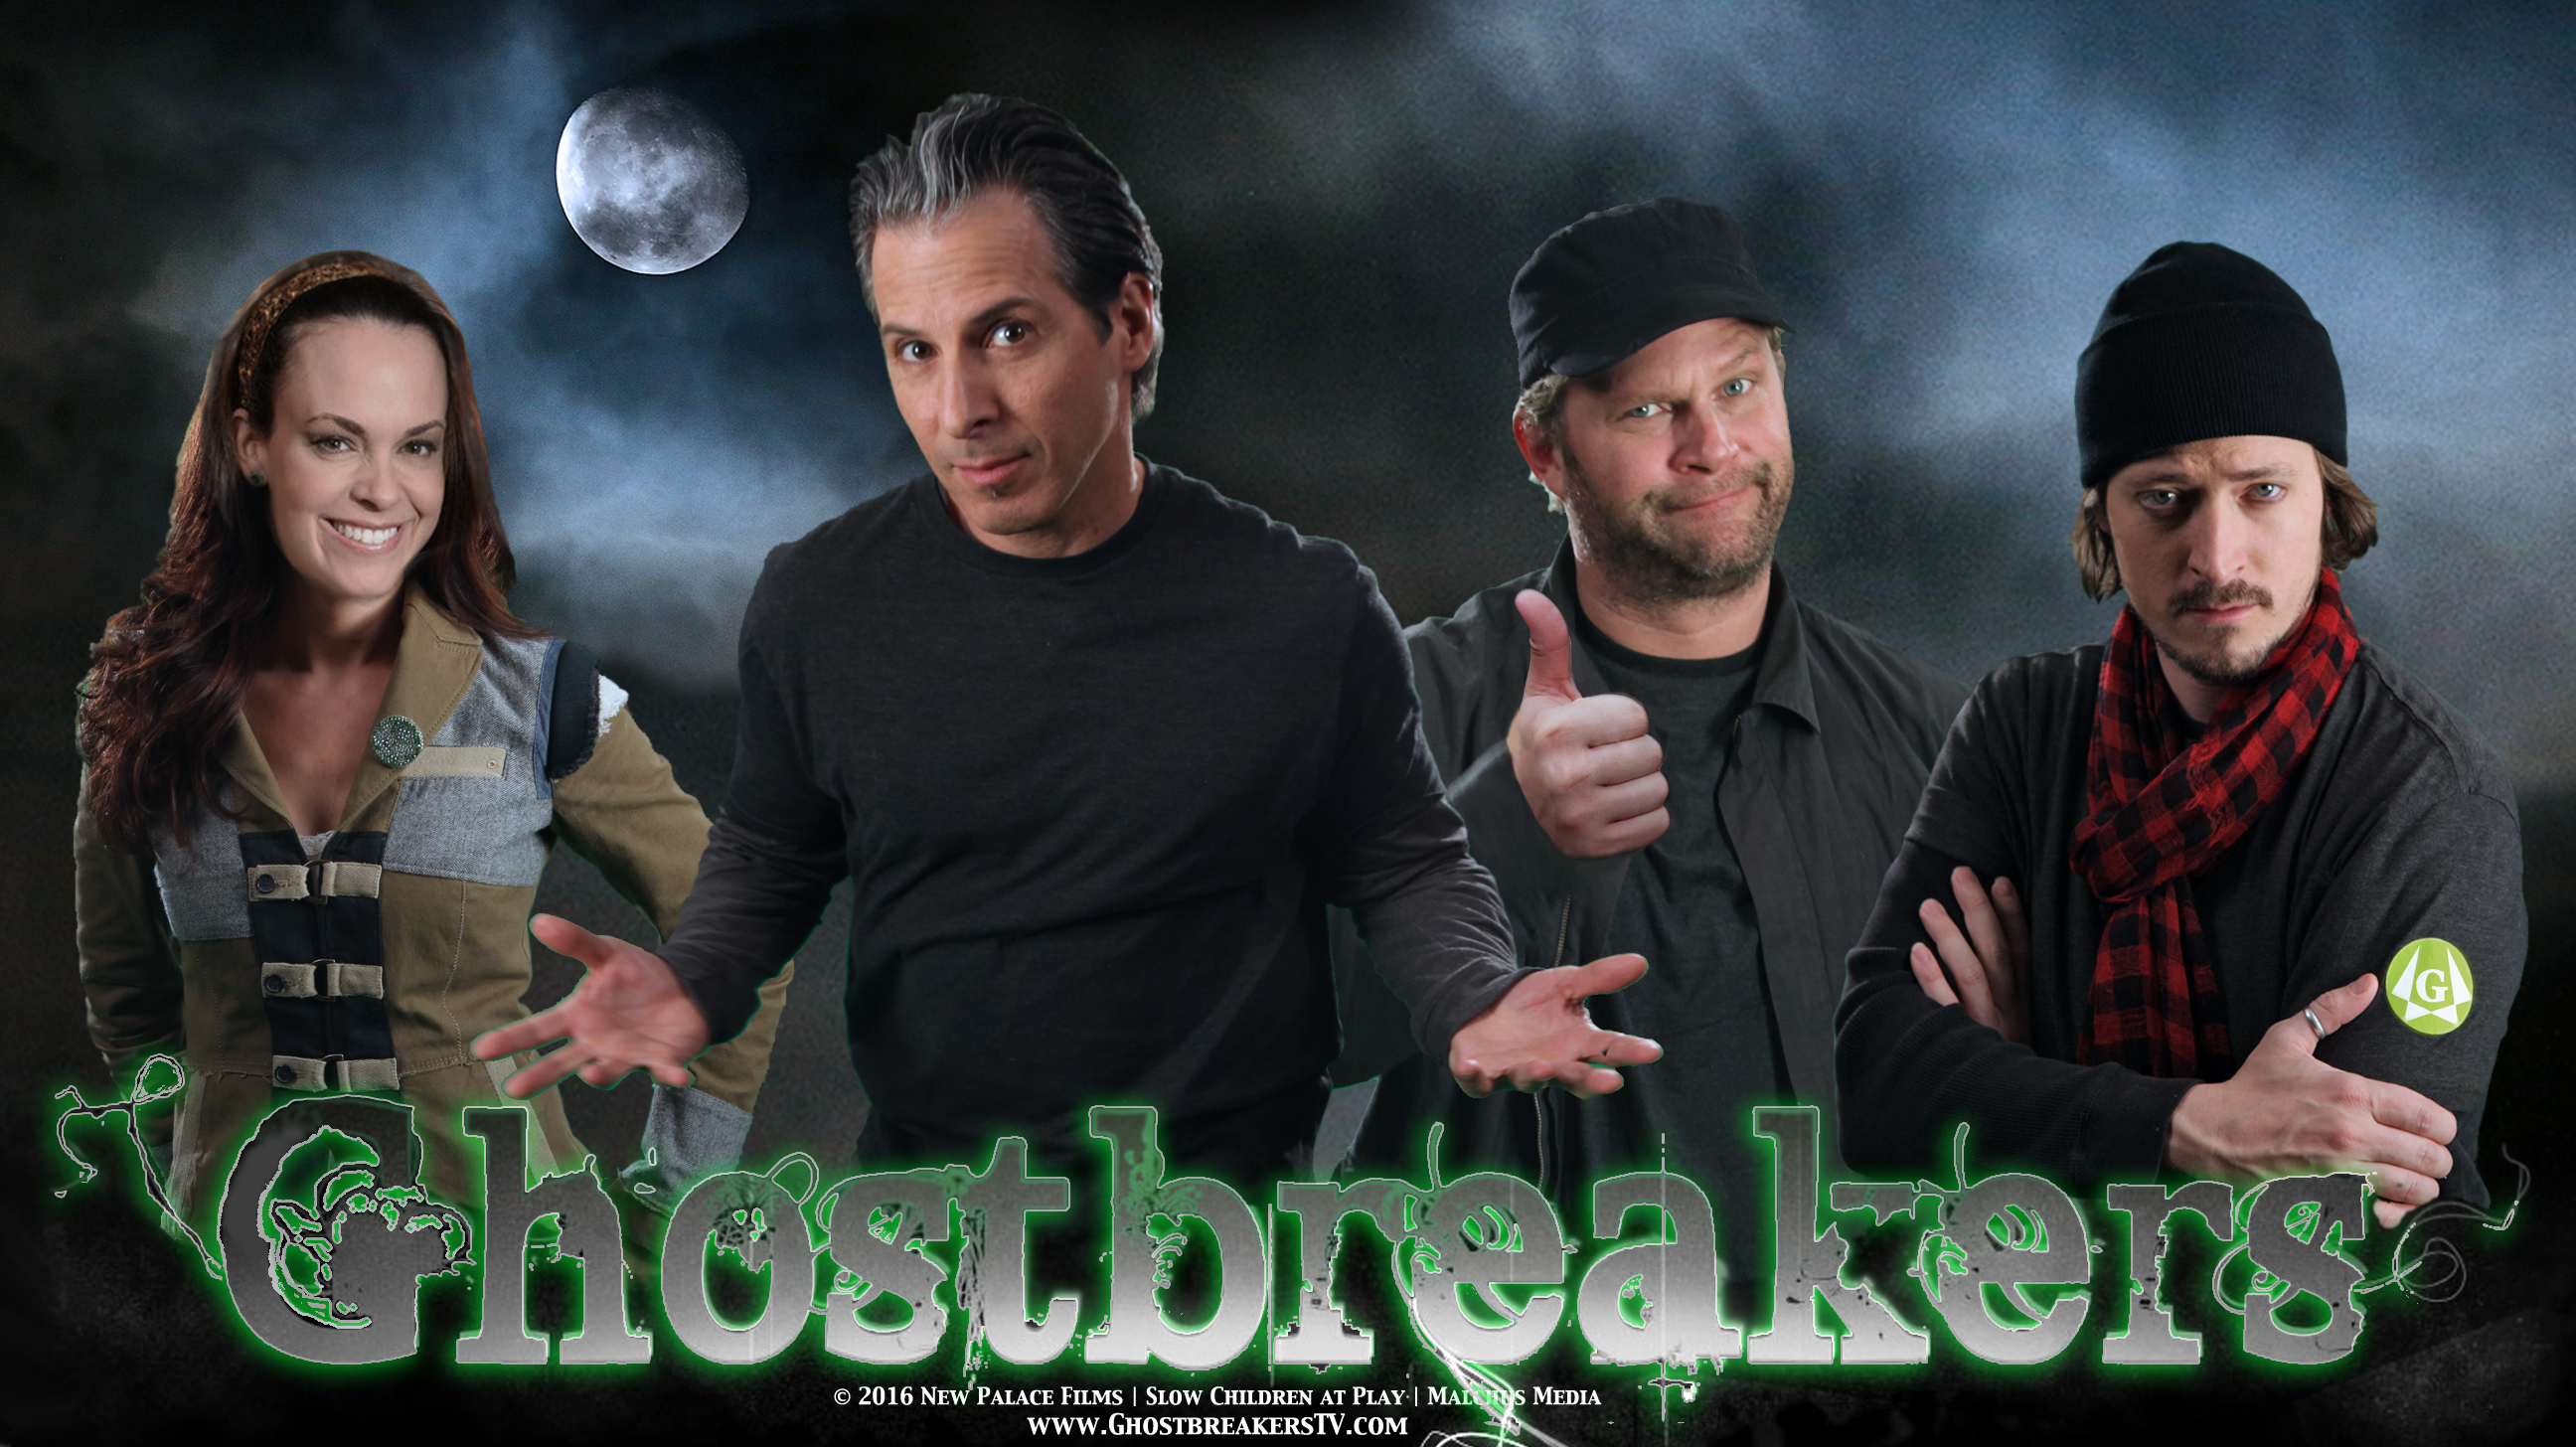 ghostbreakers cast promo full moon